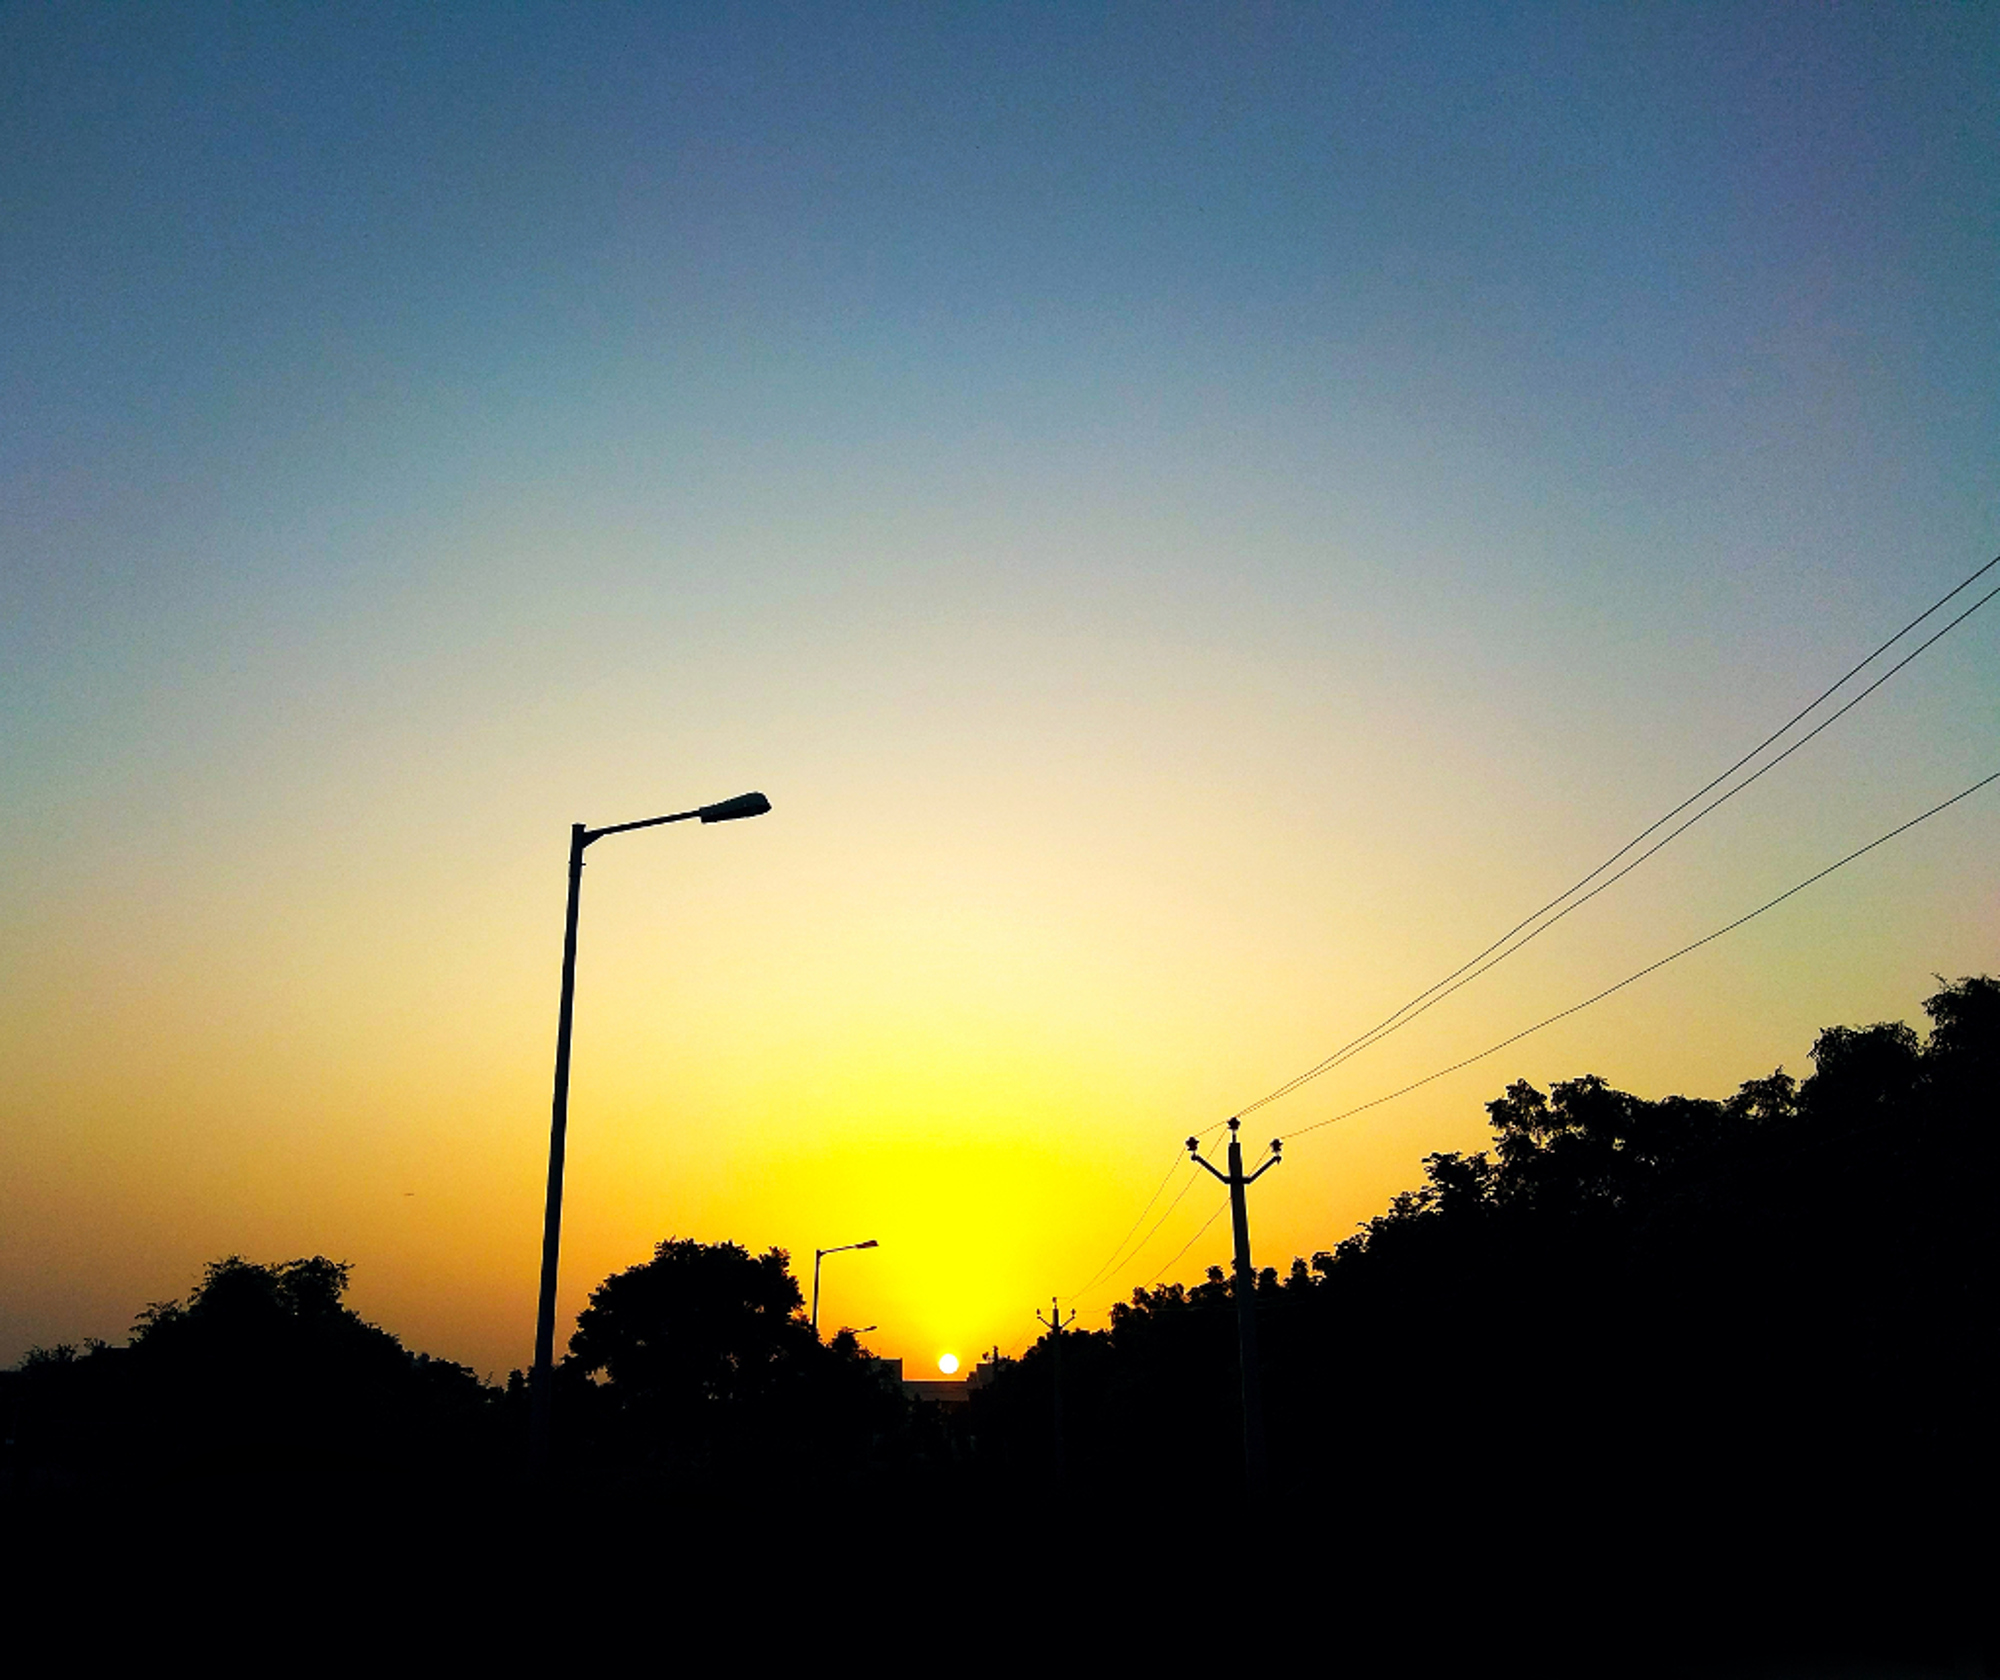 The photo contrasting effect between light and darkness. Rays of hope, the photograph is taken at Central University of Rajasthan campus.